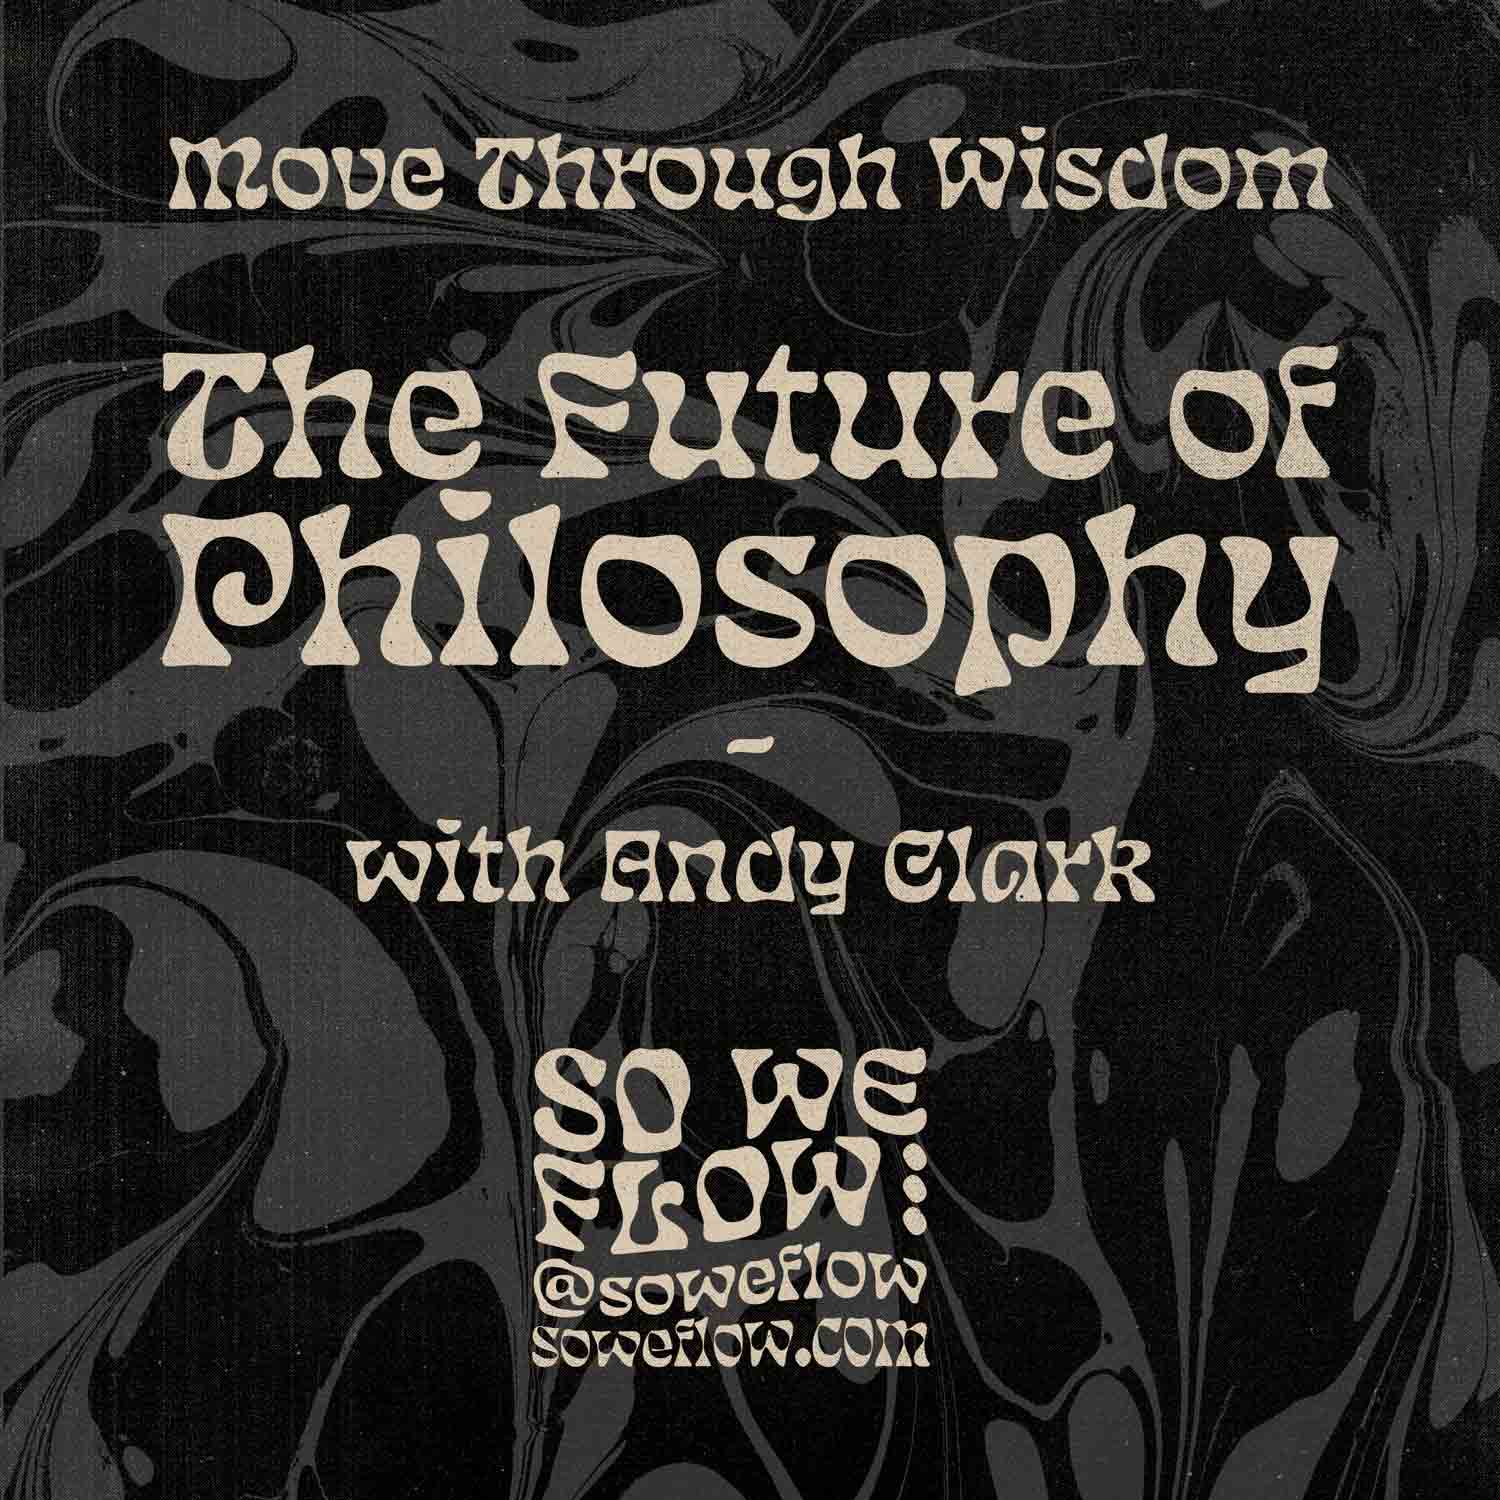 The Future of Philosophy Artwork for article by So We Flow...